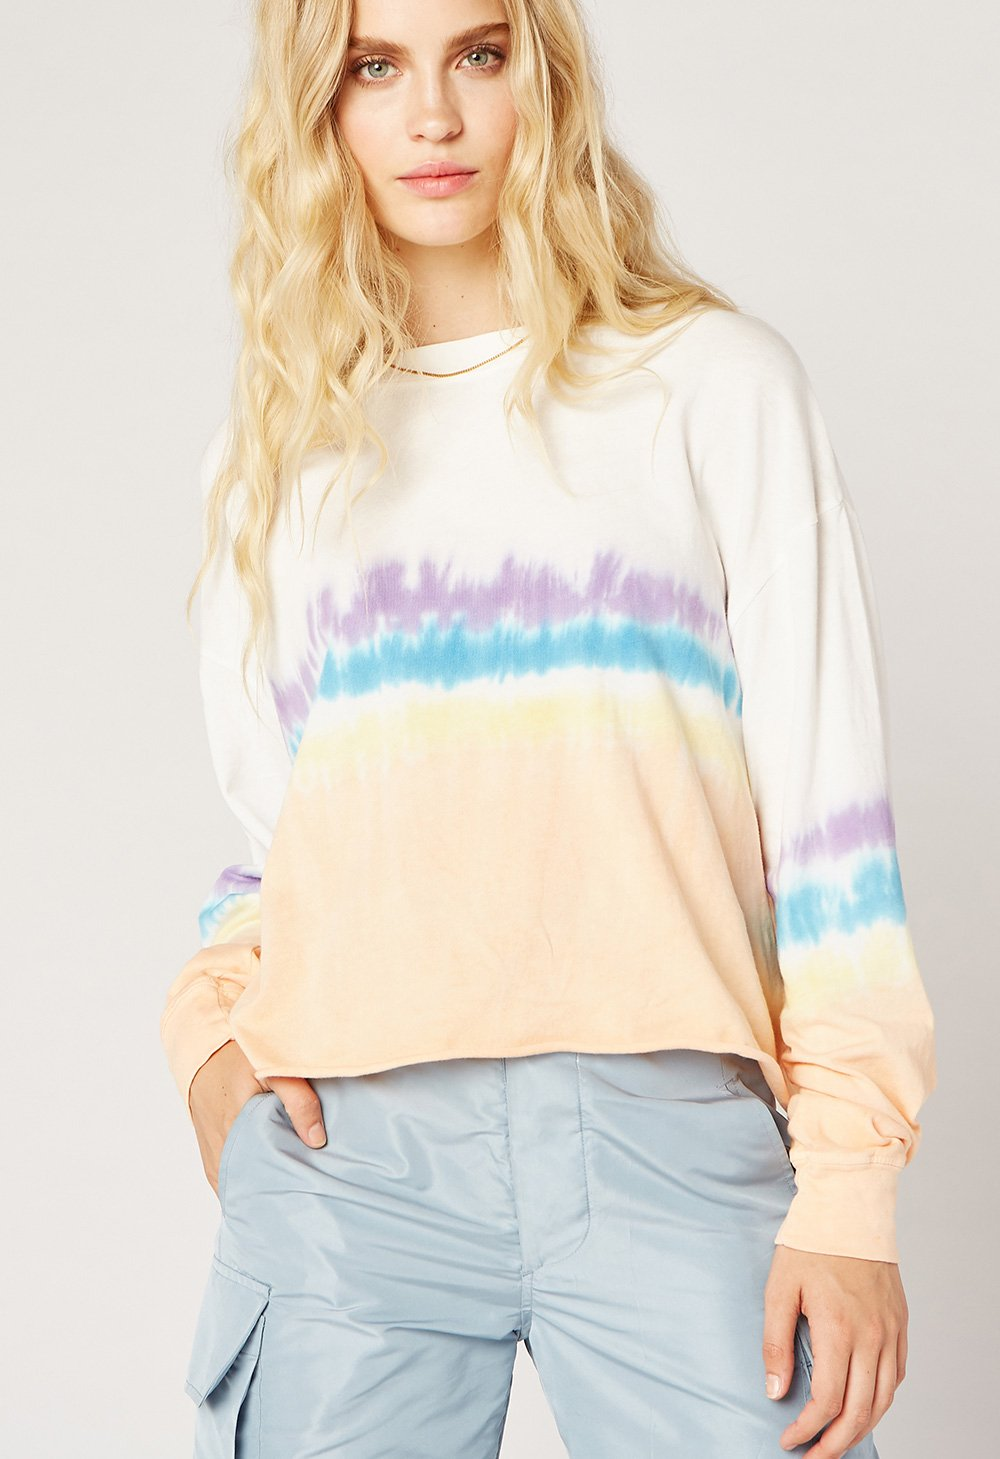 Daydreamer Sherbert Tie Dye Long Sleeve